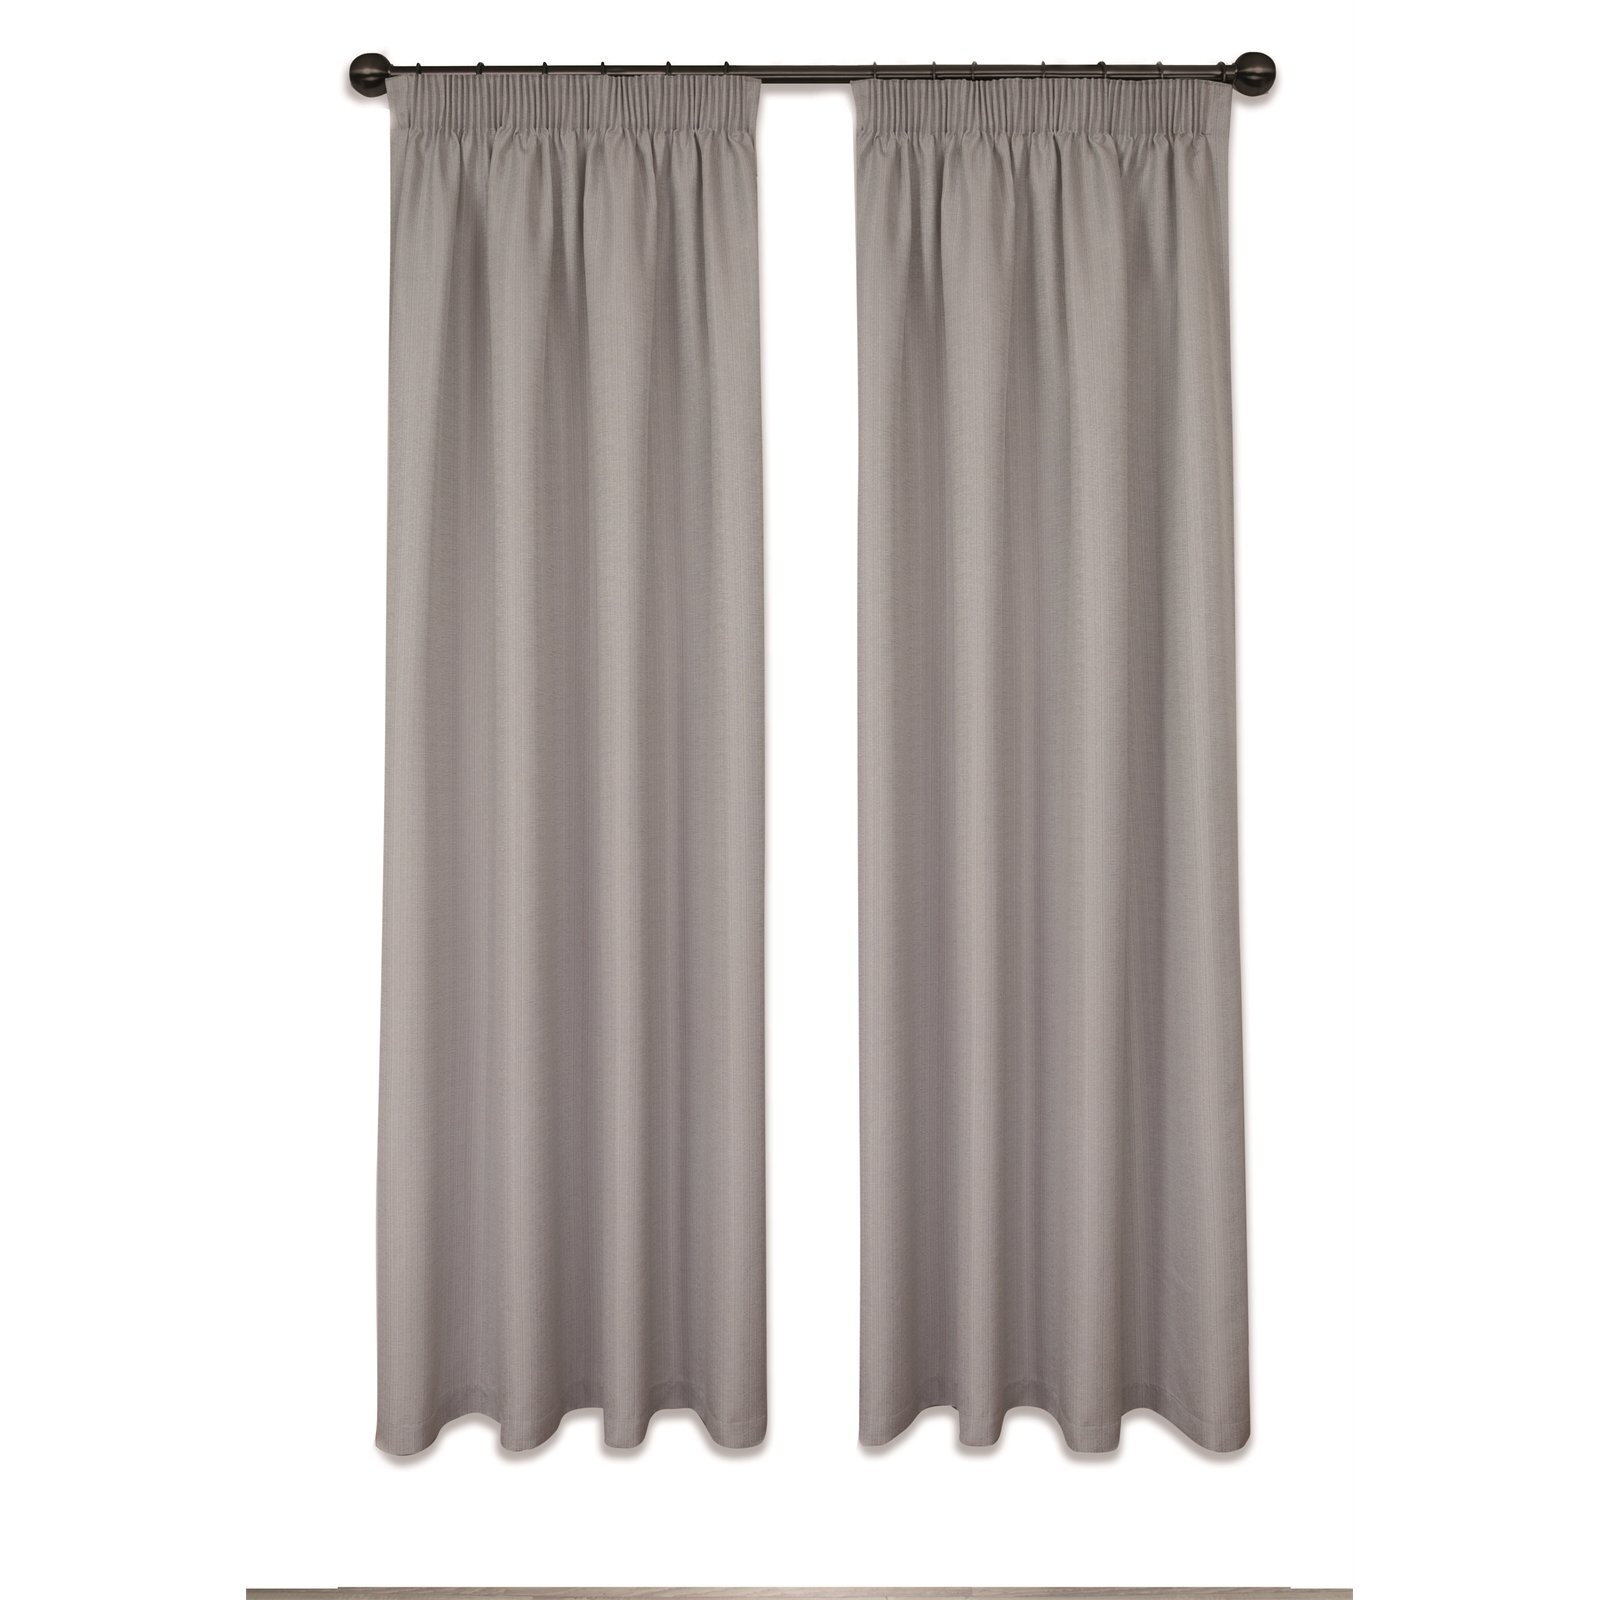 Home Style 1.5 - 2.3 x 1.6m Phoenix Thermal Curtain